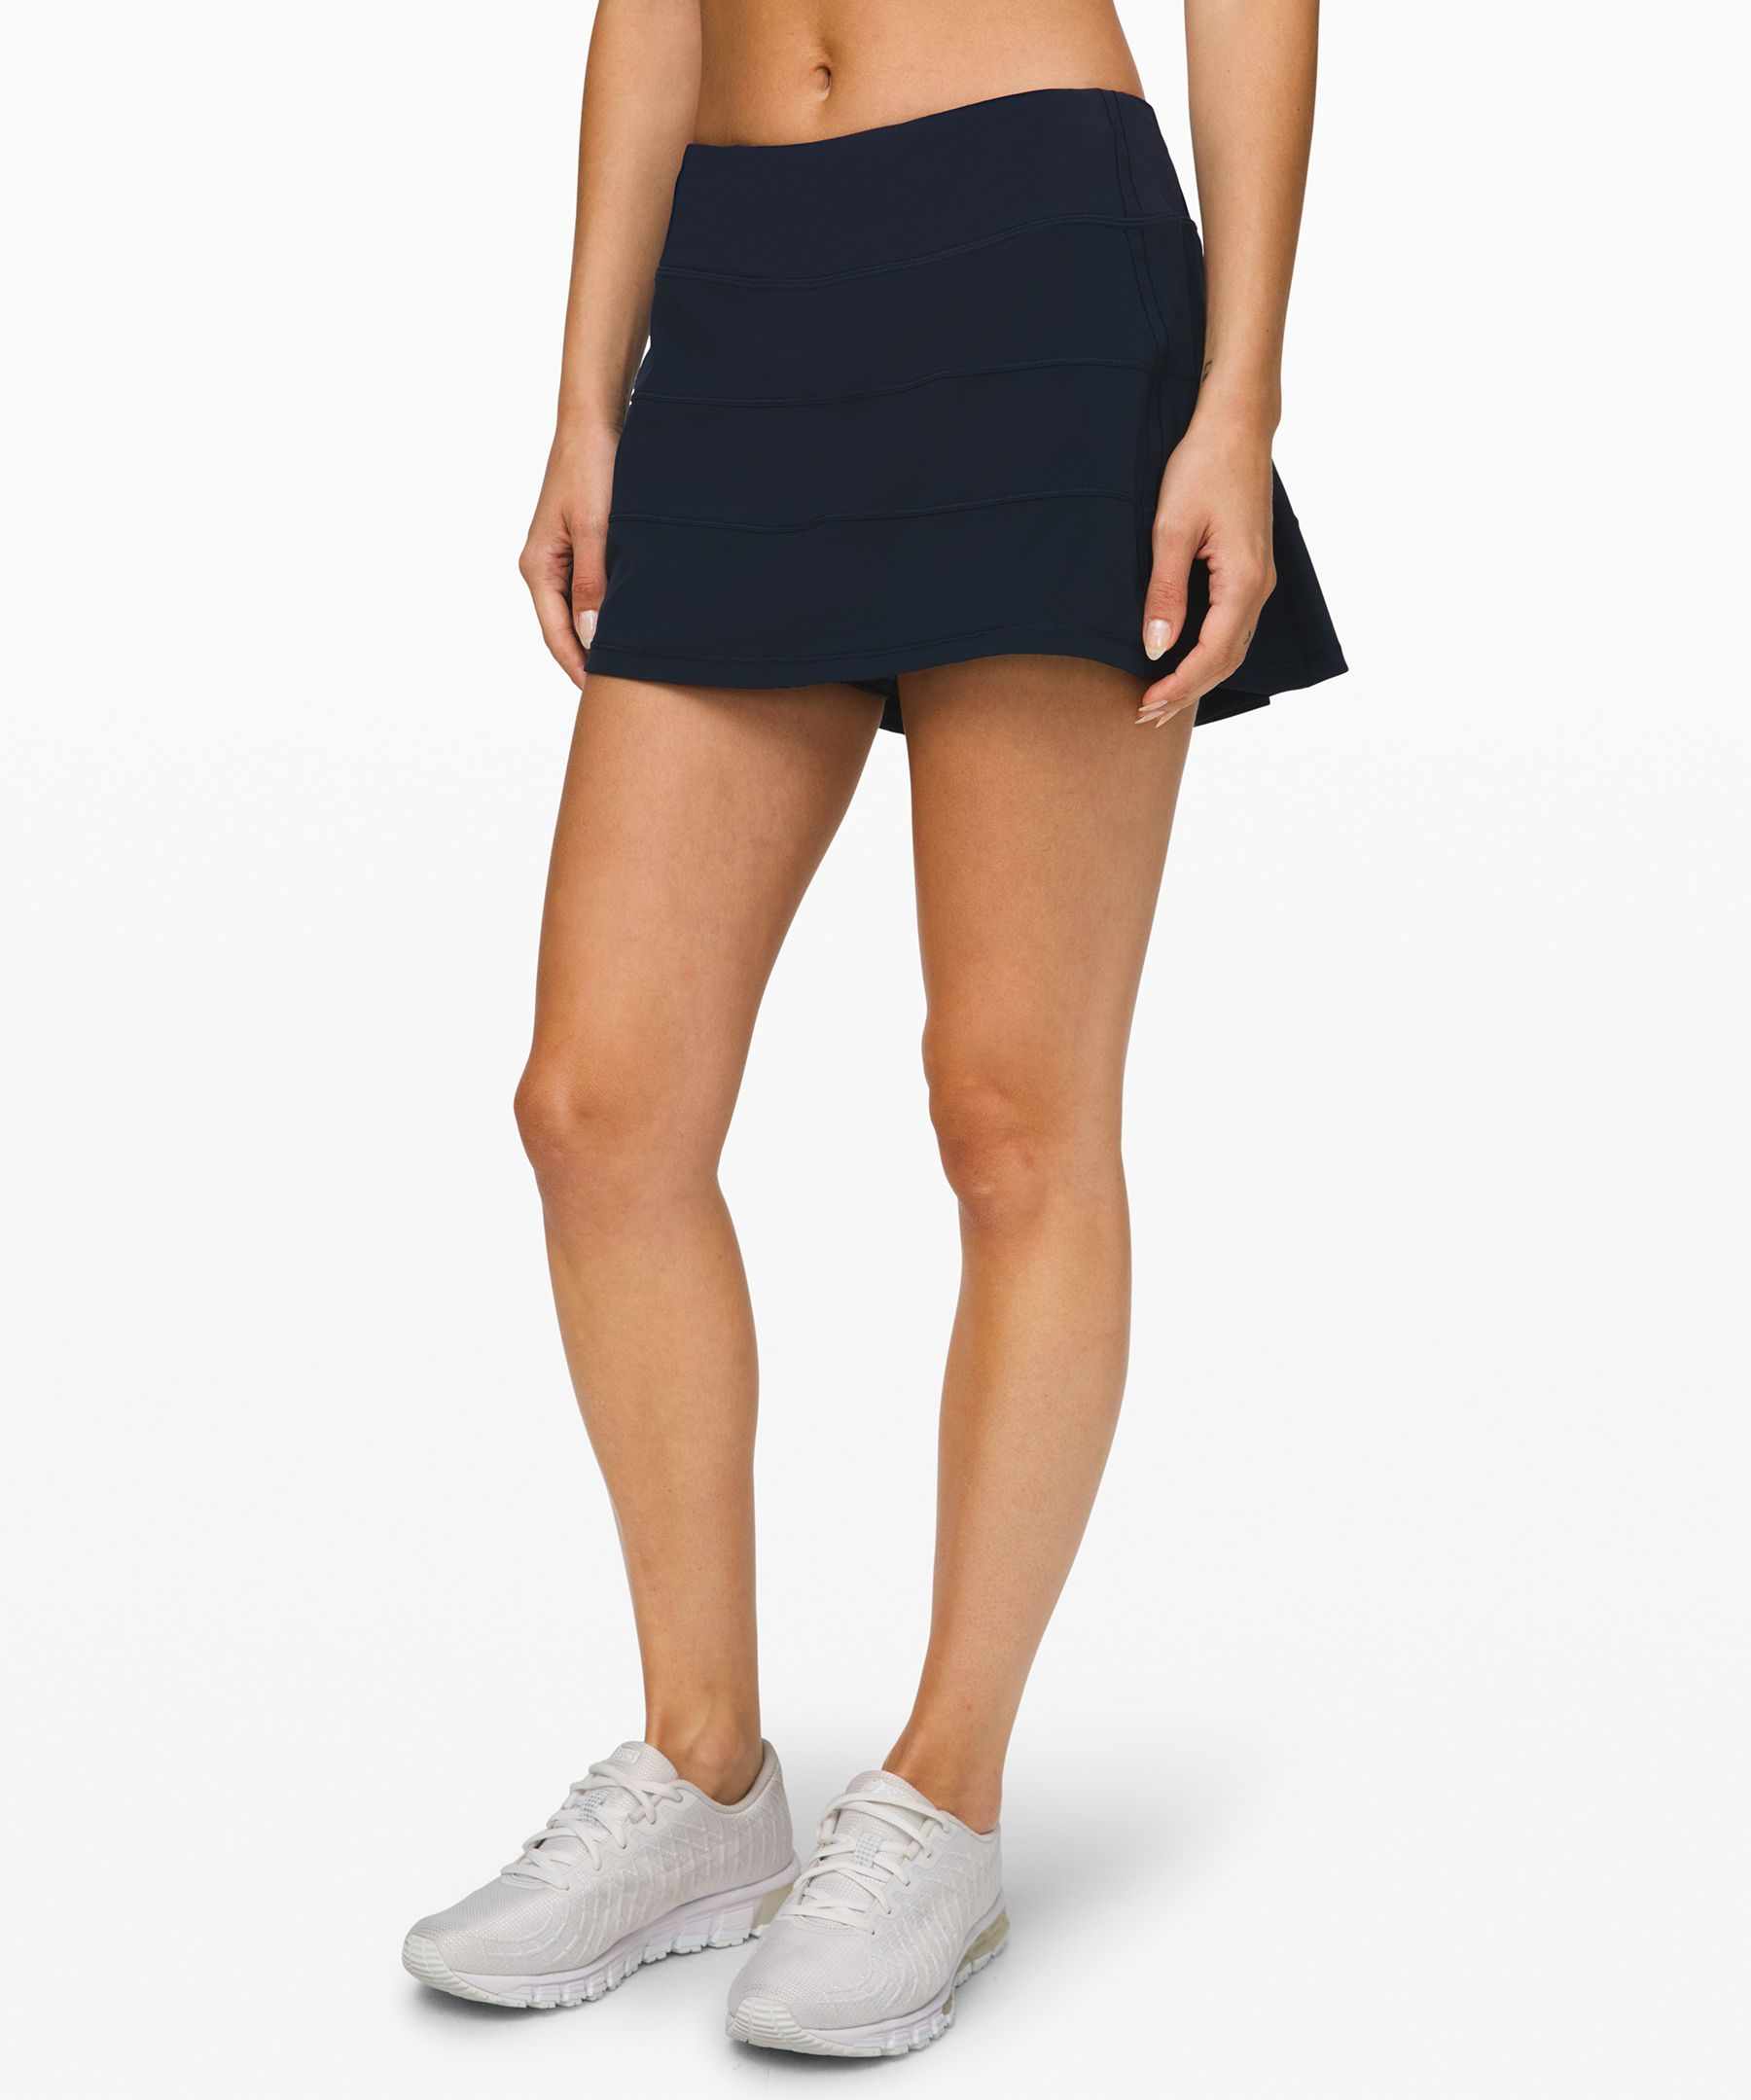 From the court to the trails,  keep necessities close in this  skirt with built-in storage.